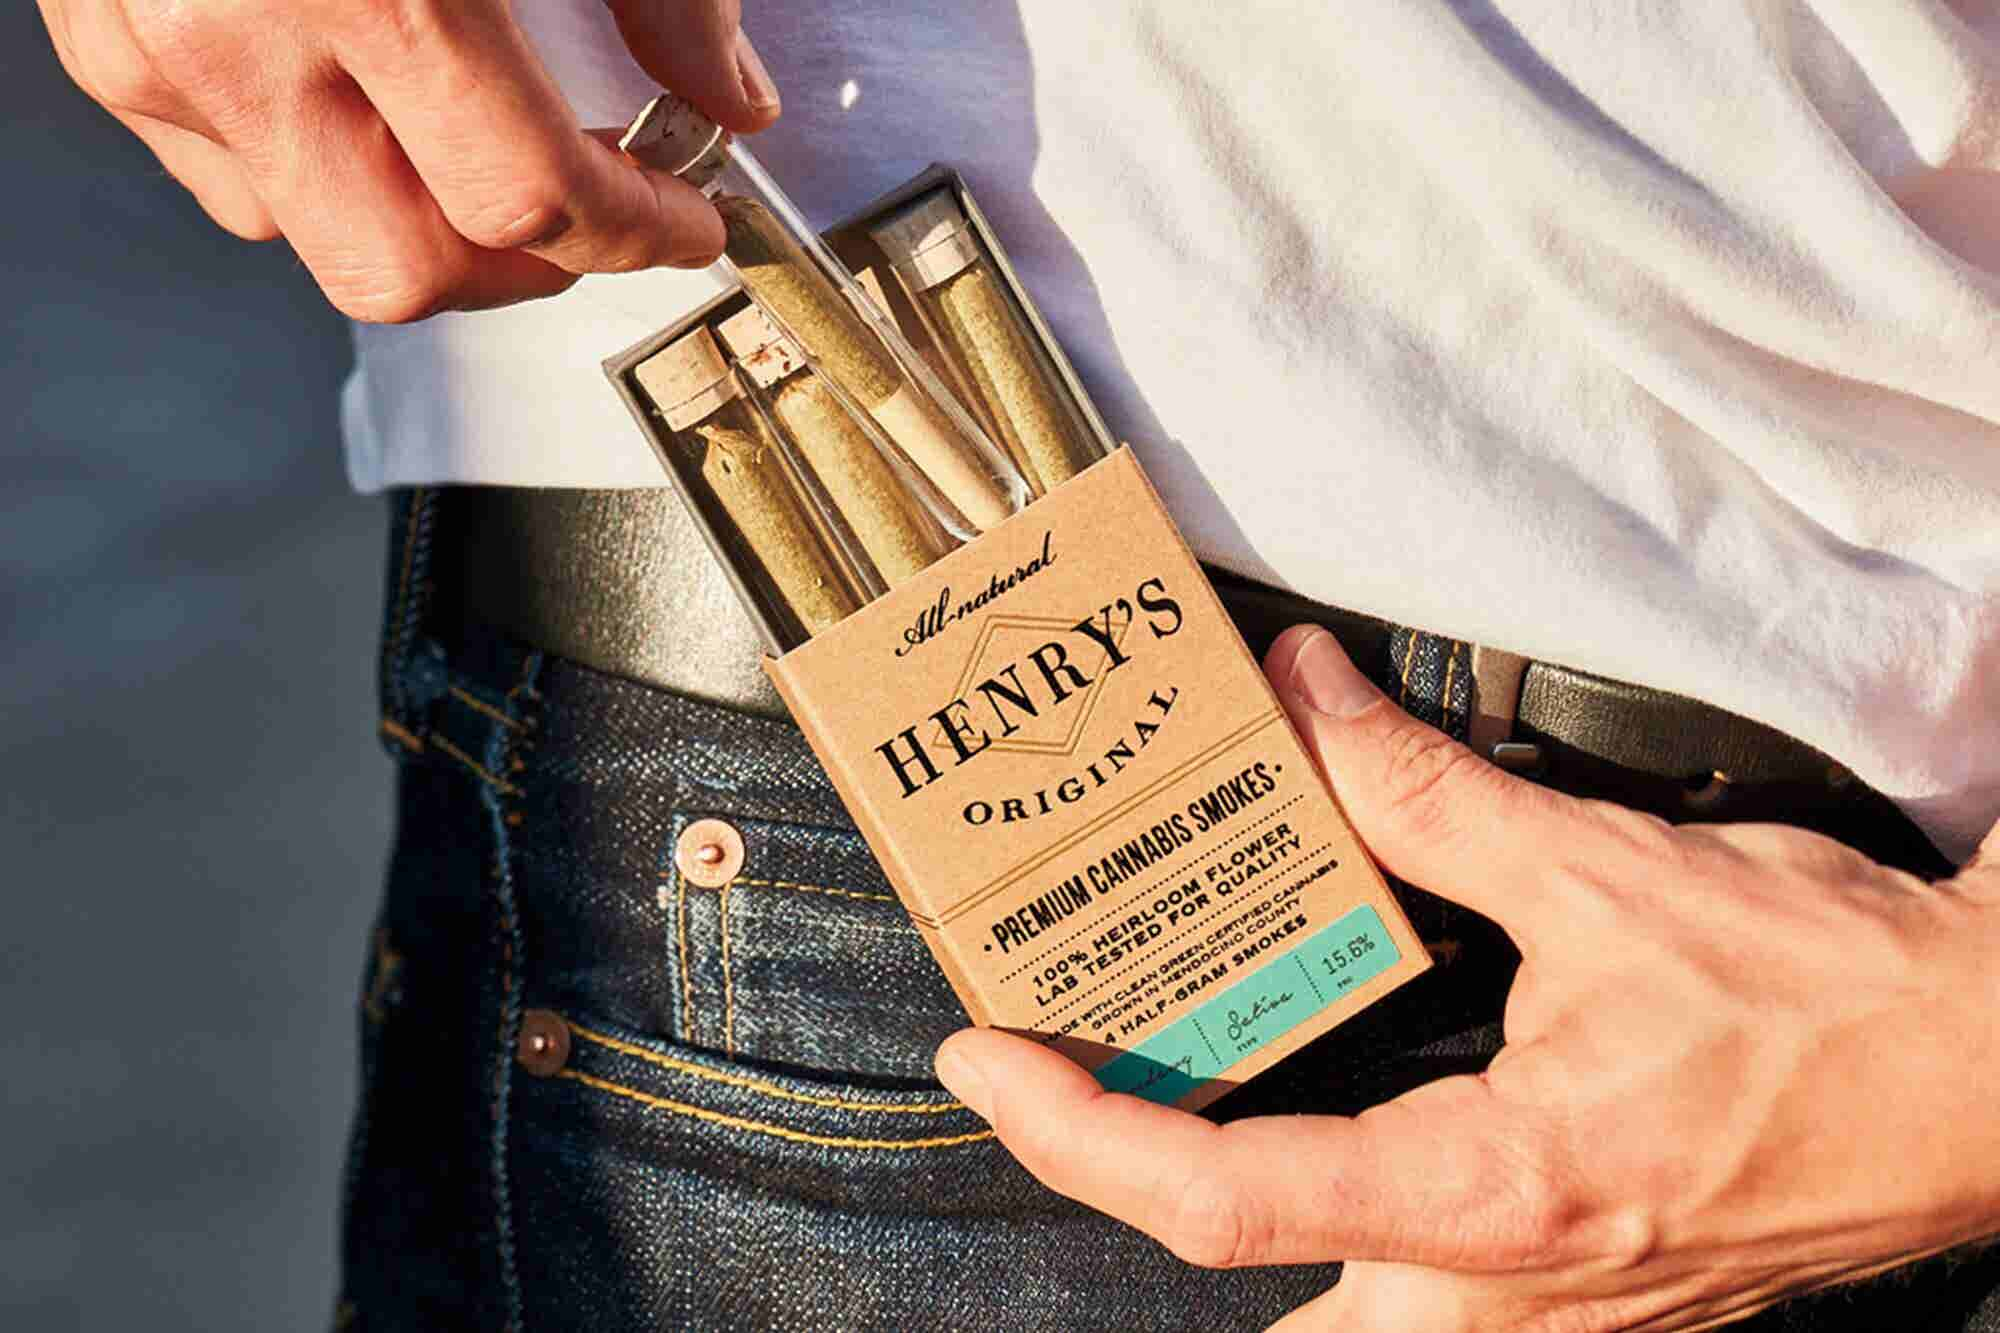 How This Cannabis Brand Designed a Modern Product With Nostalgic Packaging